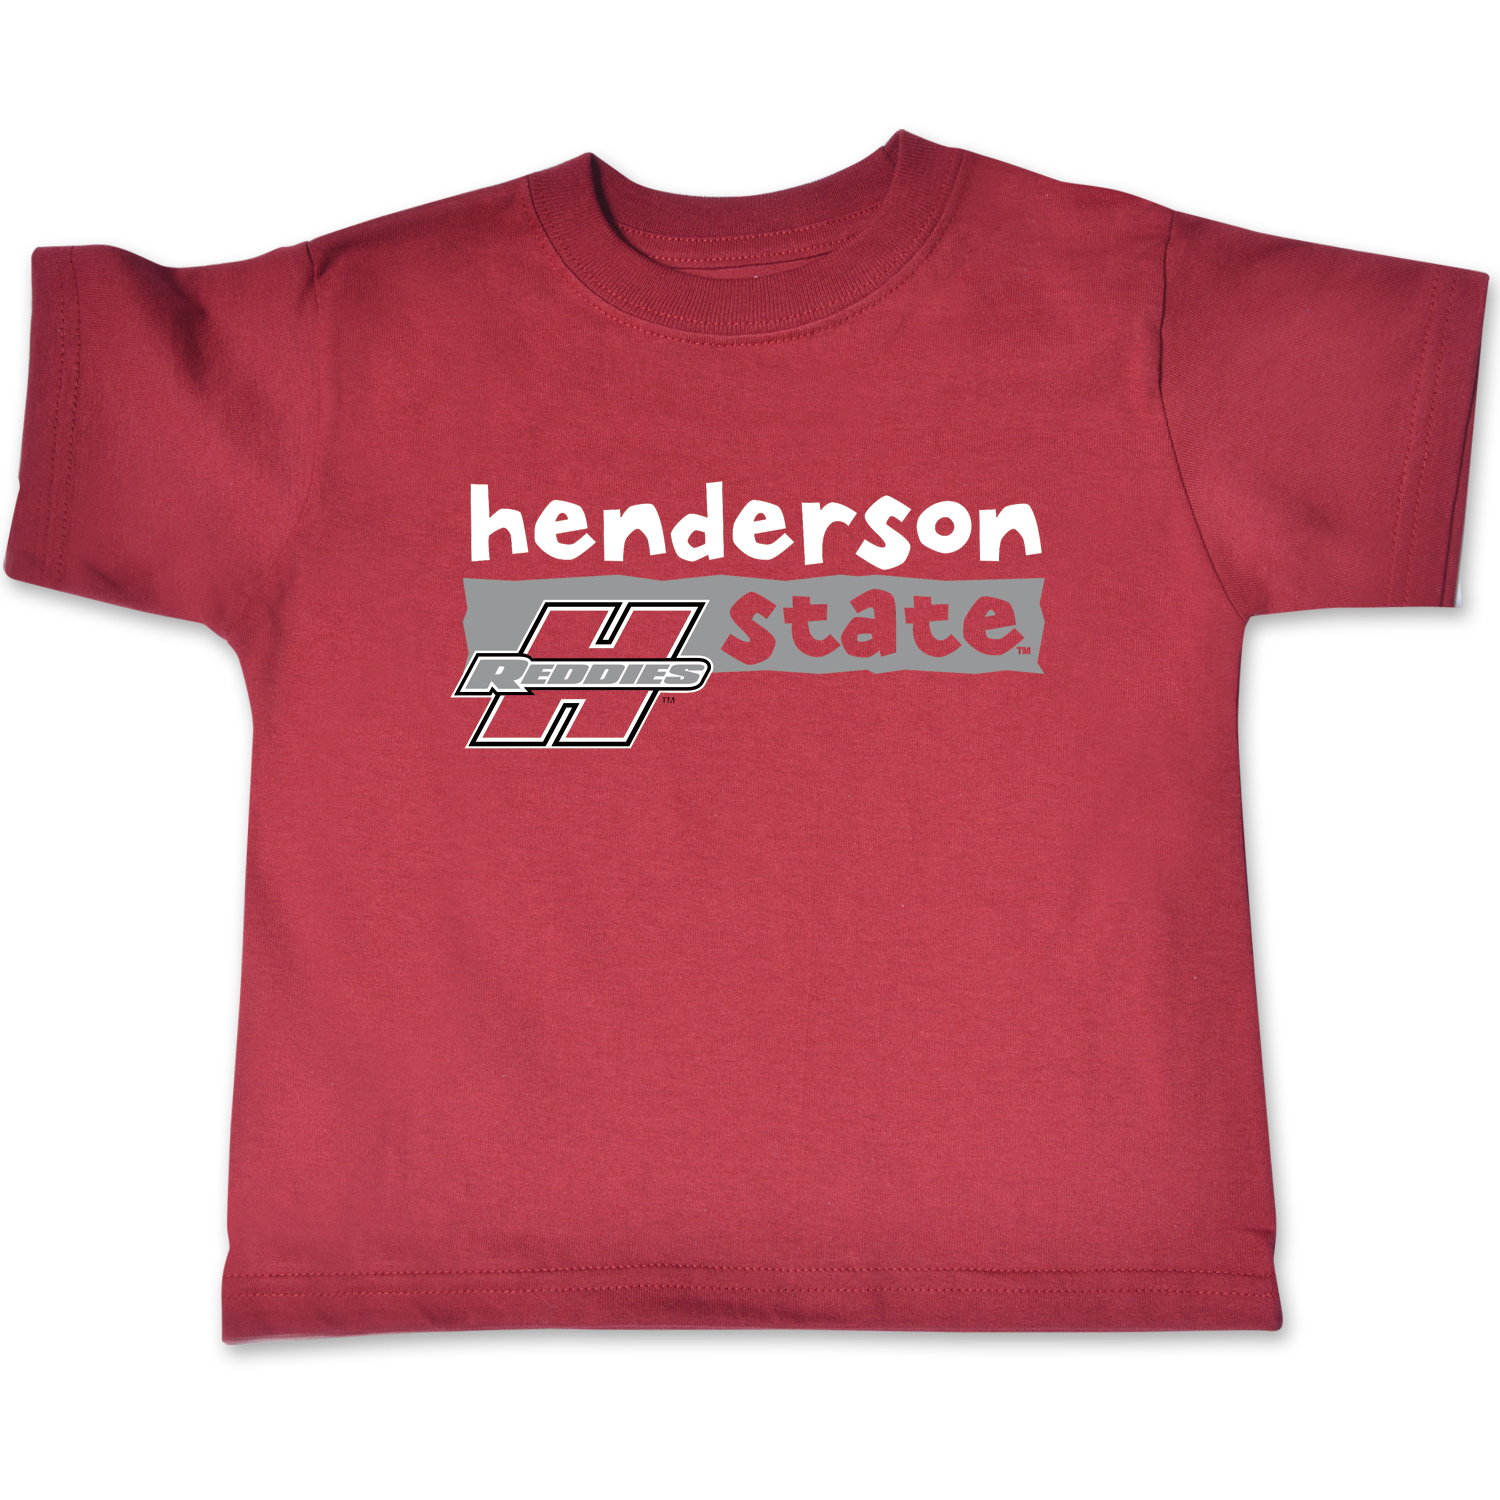 Henderson State Reddies Toddler Short Sleeve T-Shirt